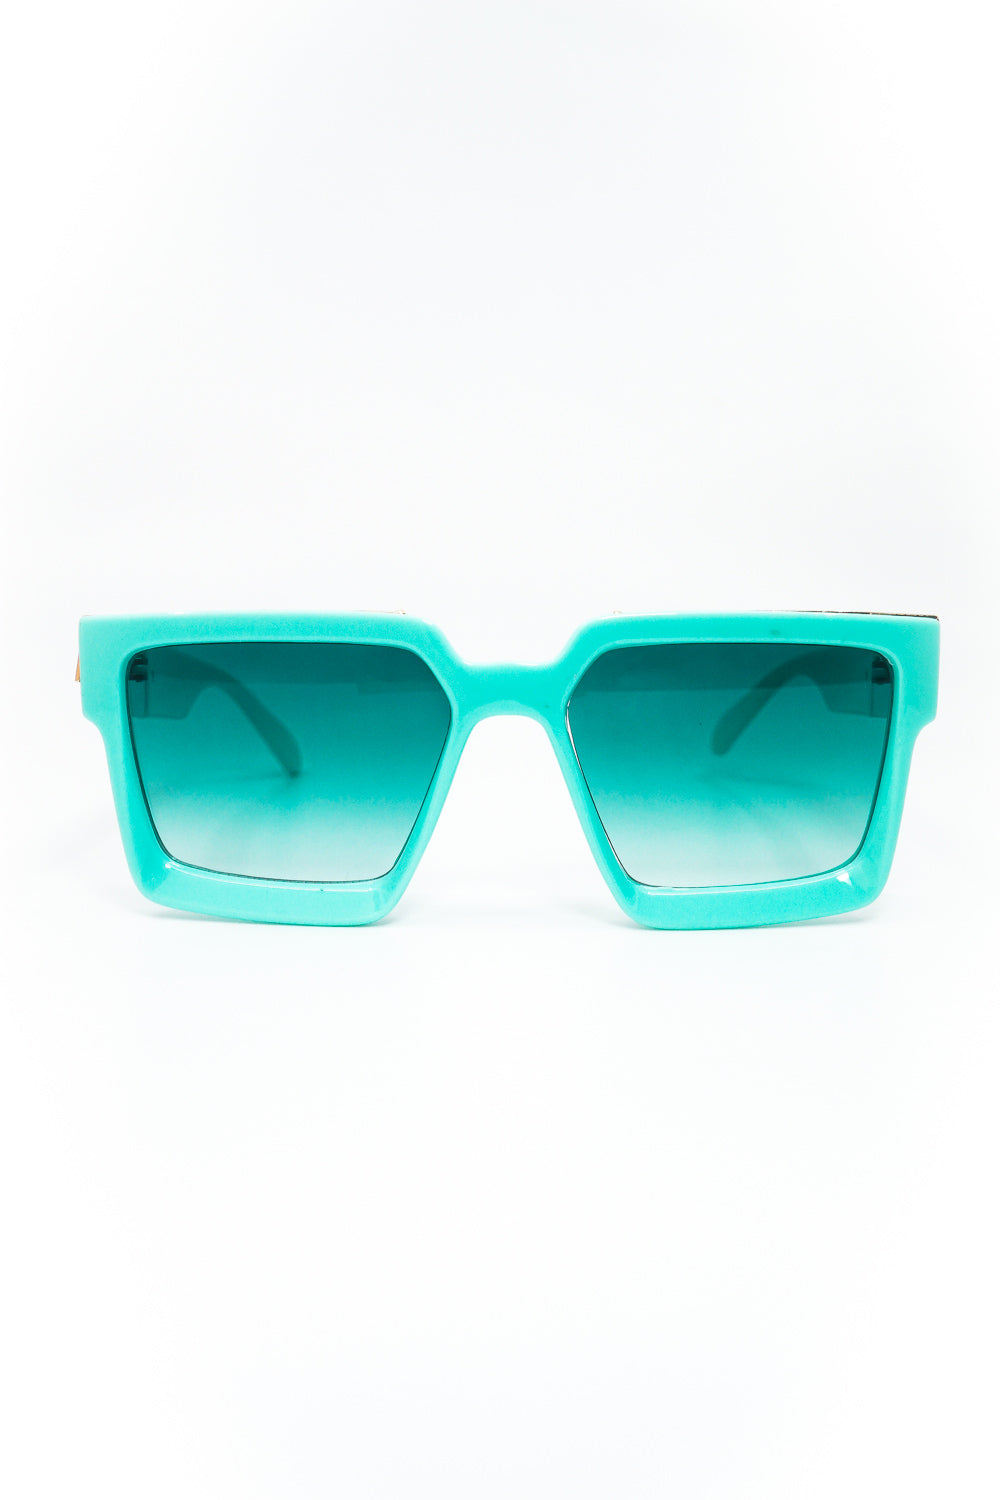 Seasons Hottest Thickened Square Frame Sunglasses in Mint and Light Blue - Fashion House USA